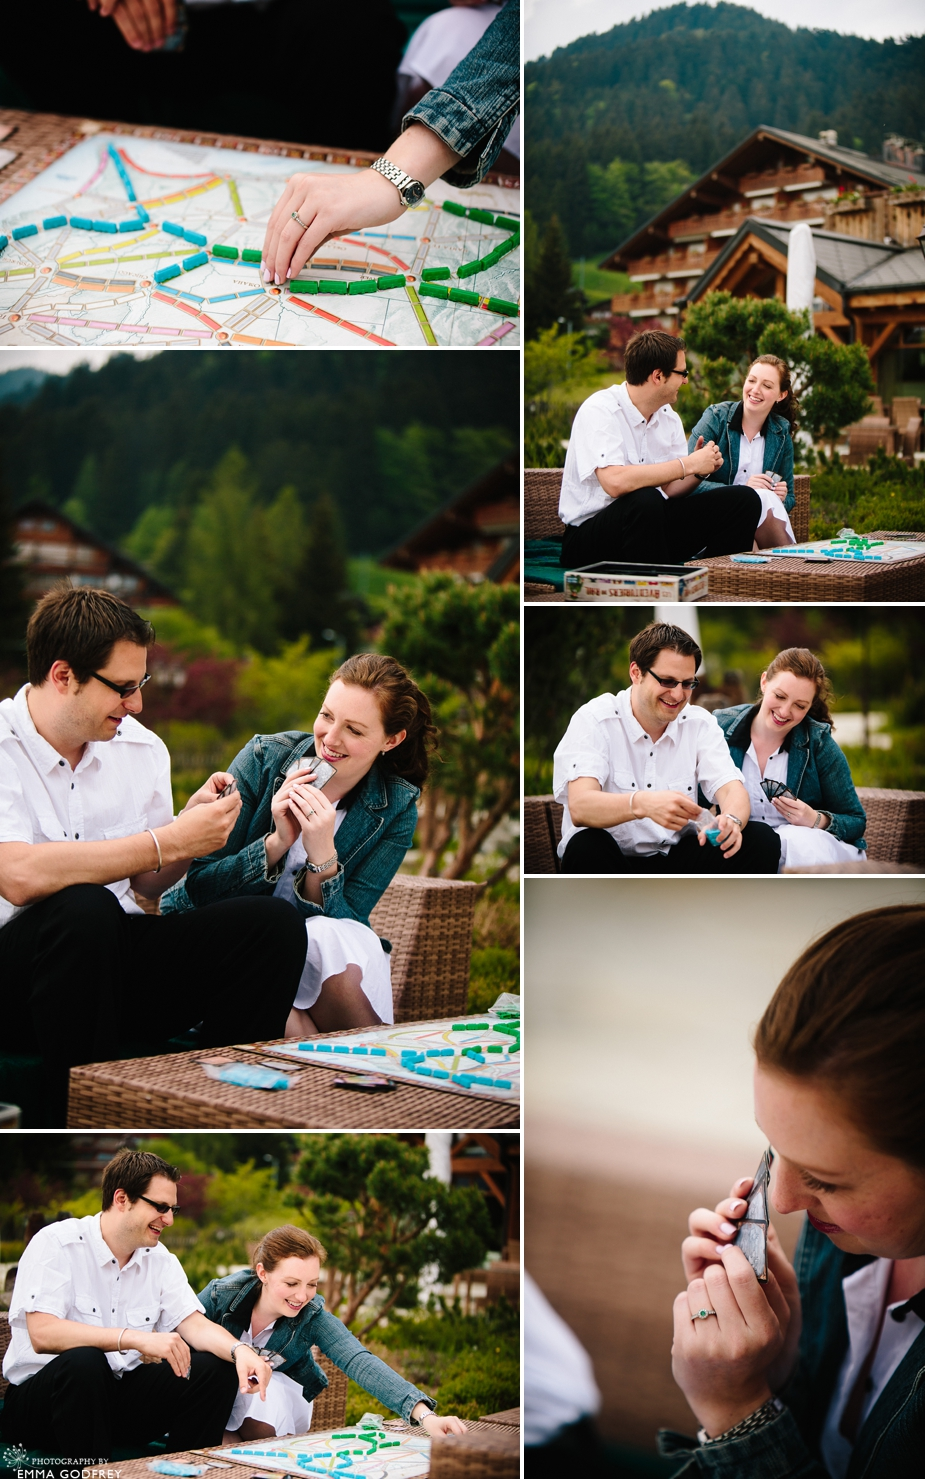 33-Engagement-wedding-photographer-Switzerland-Villars.jpg